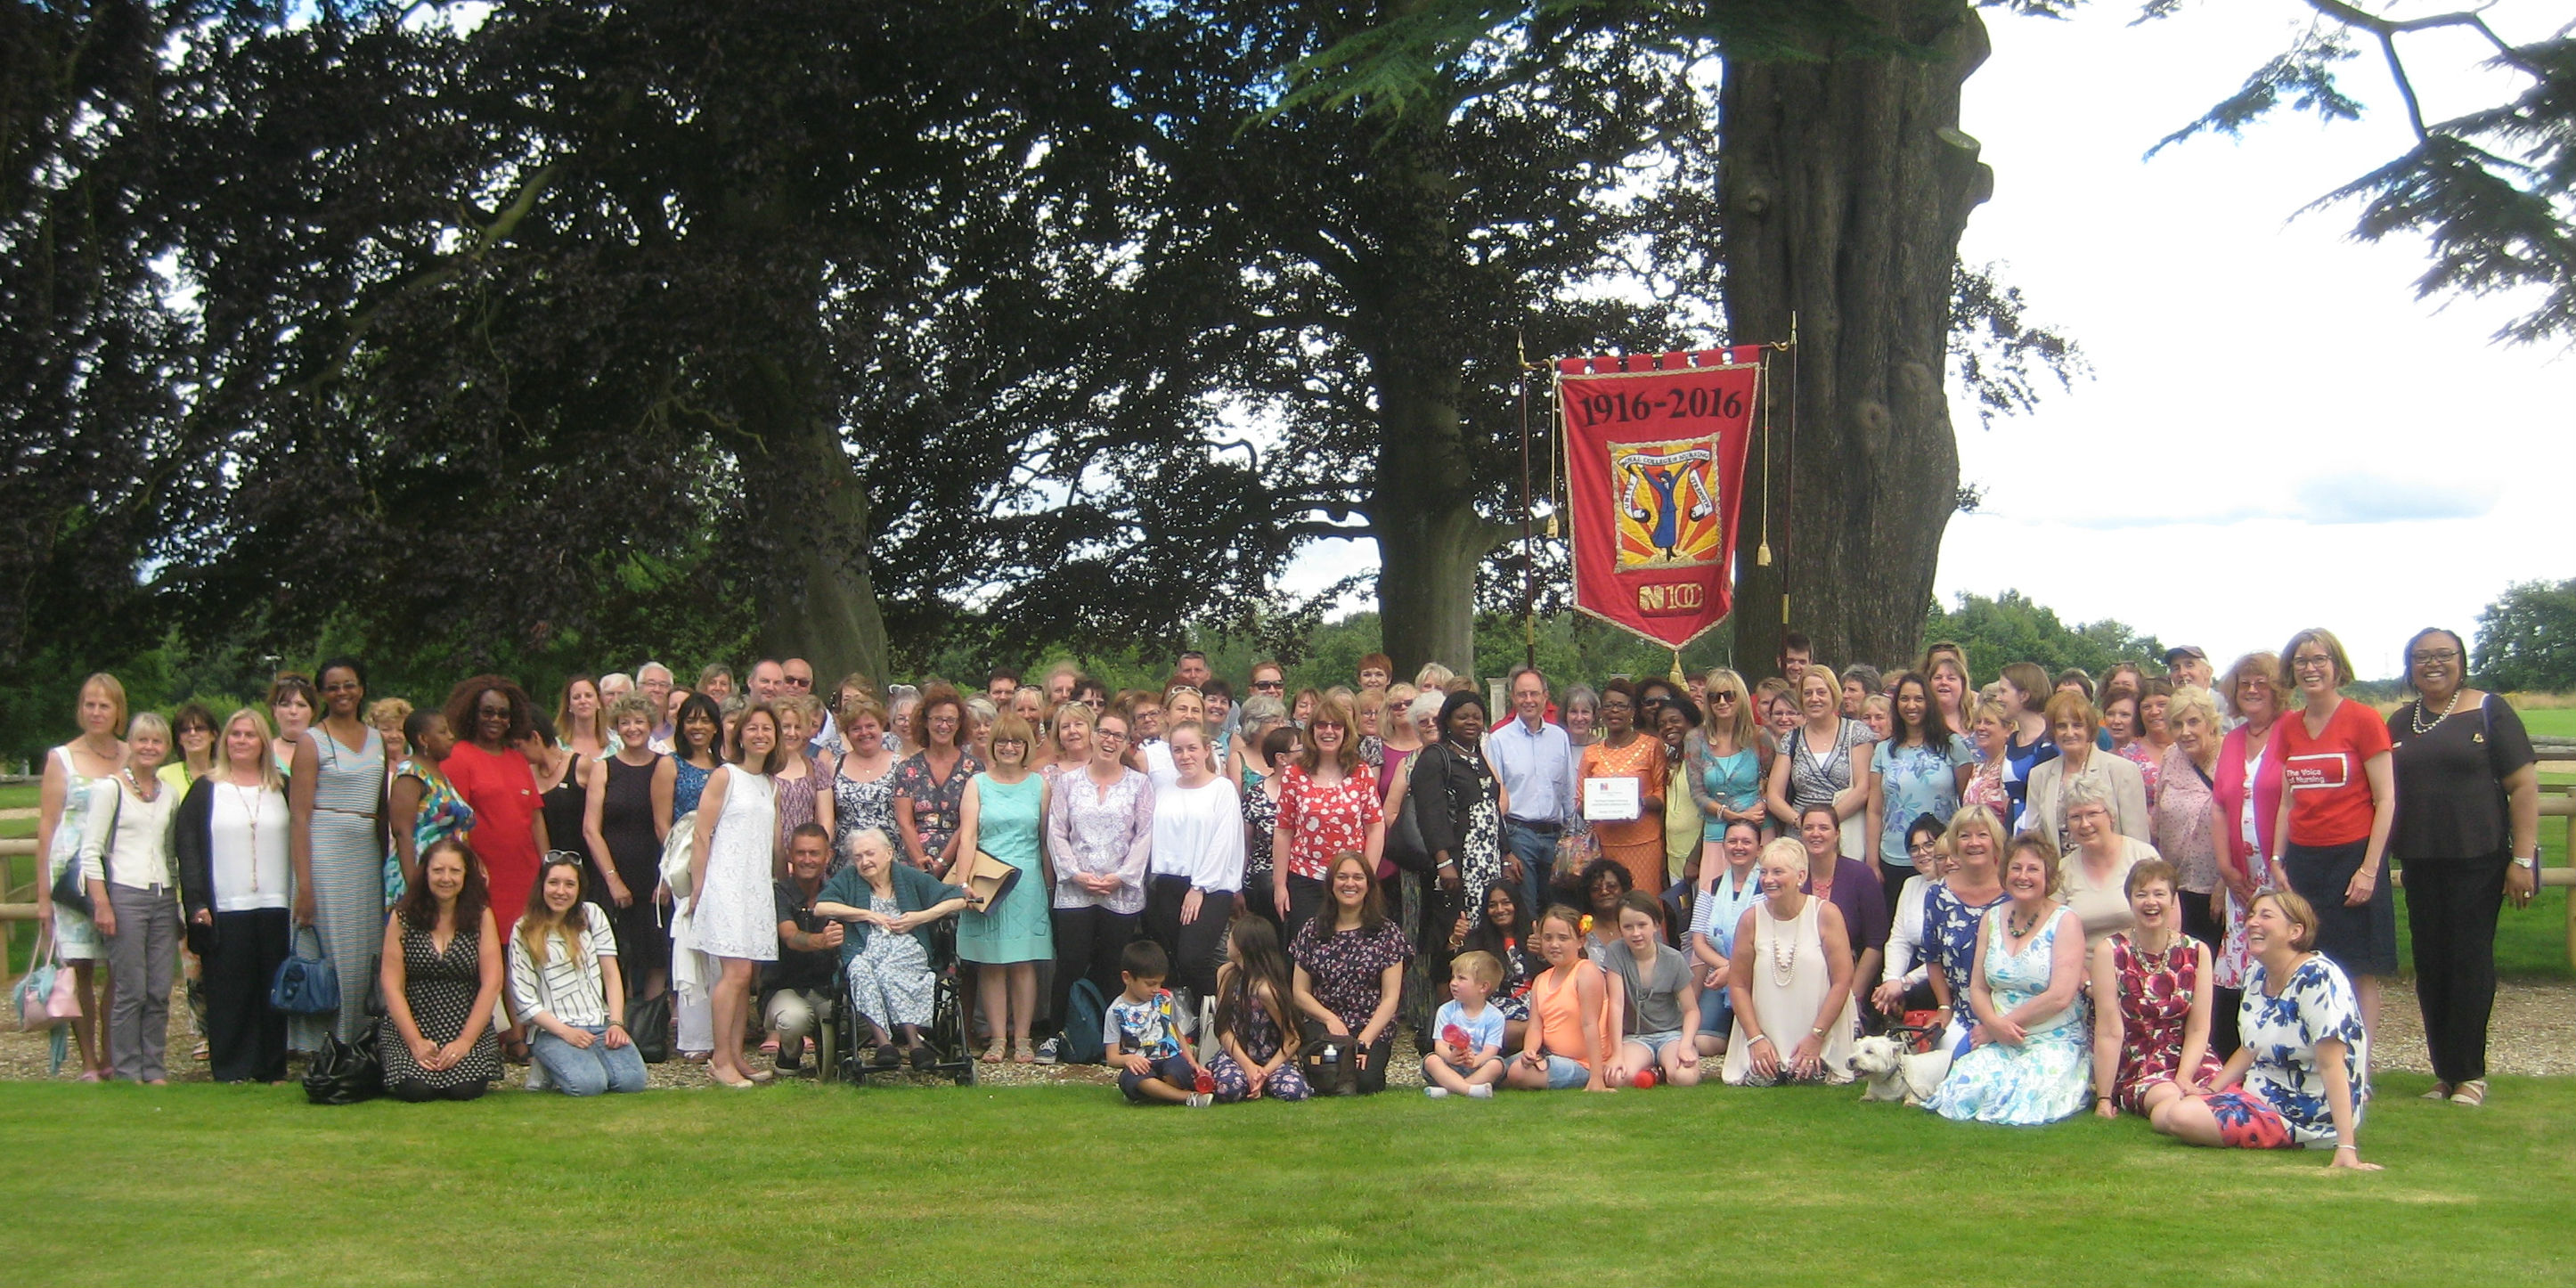 South east centenary celebrations